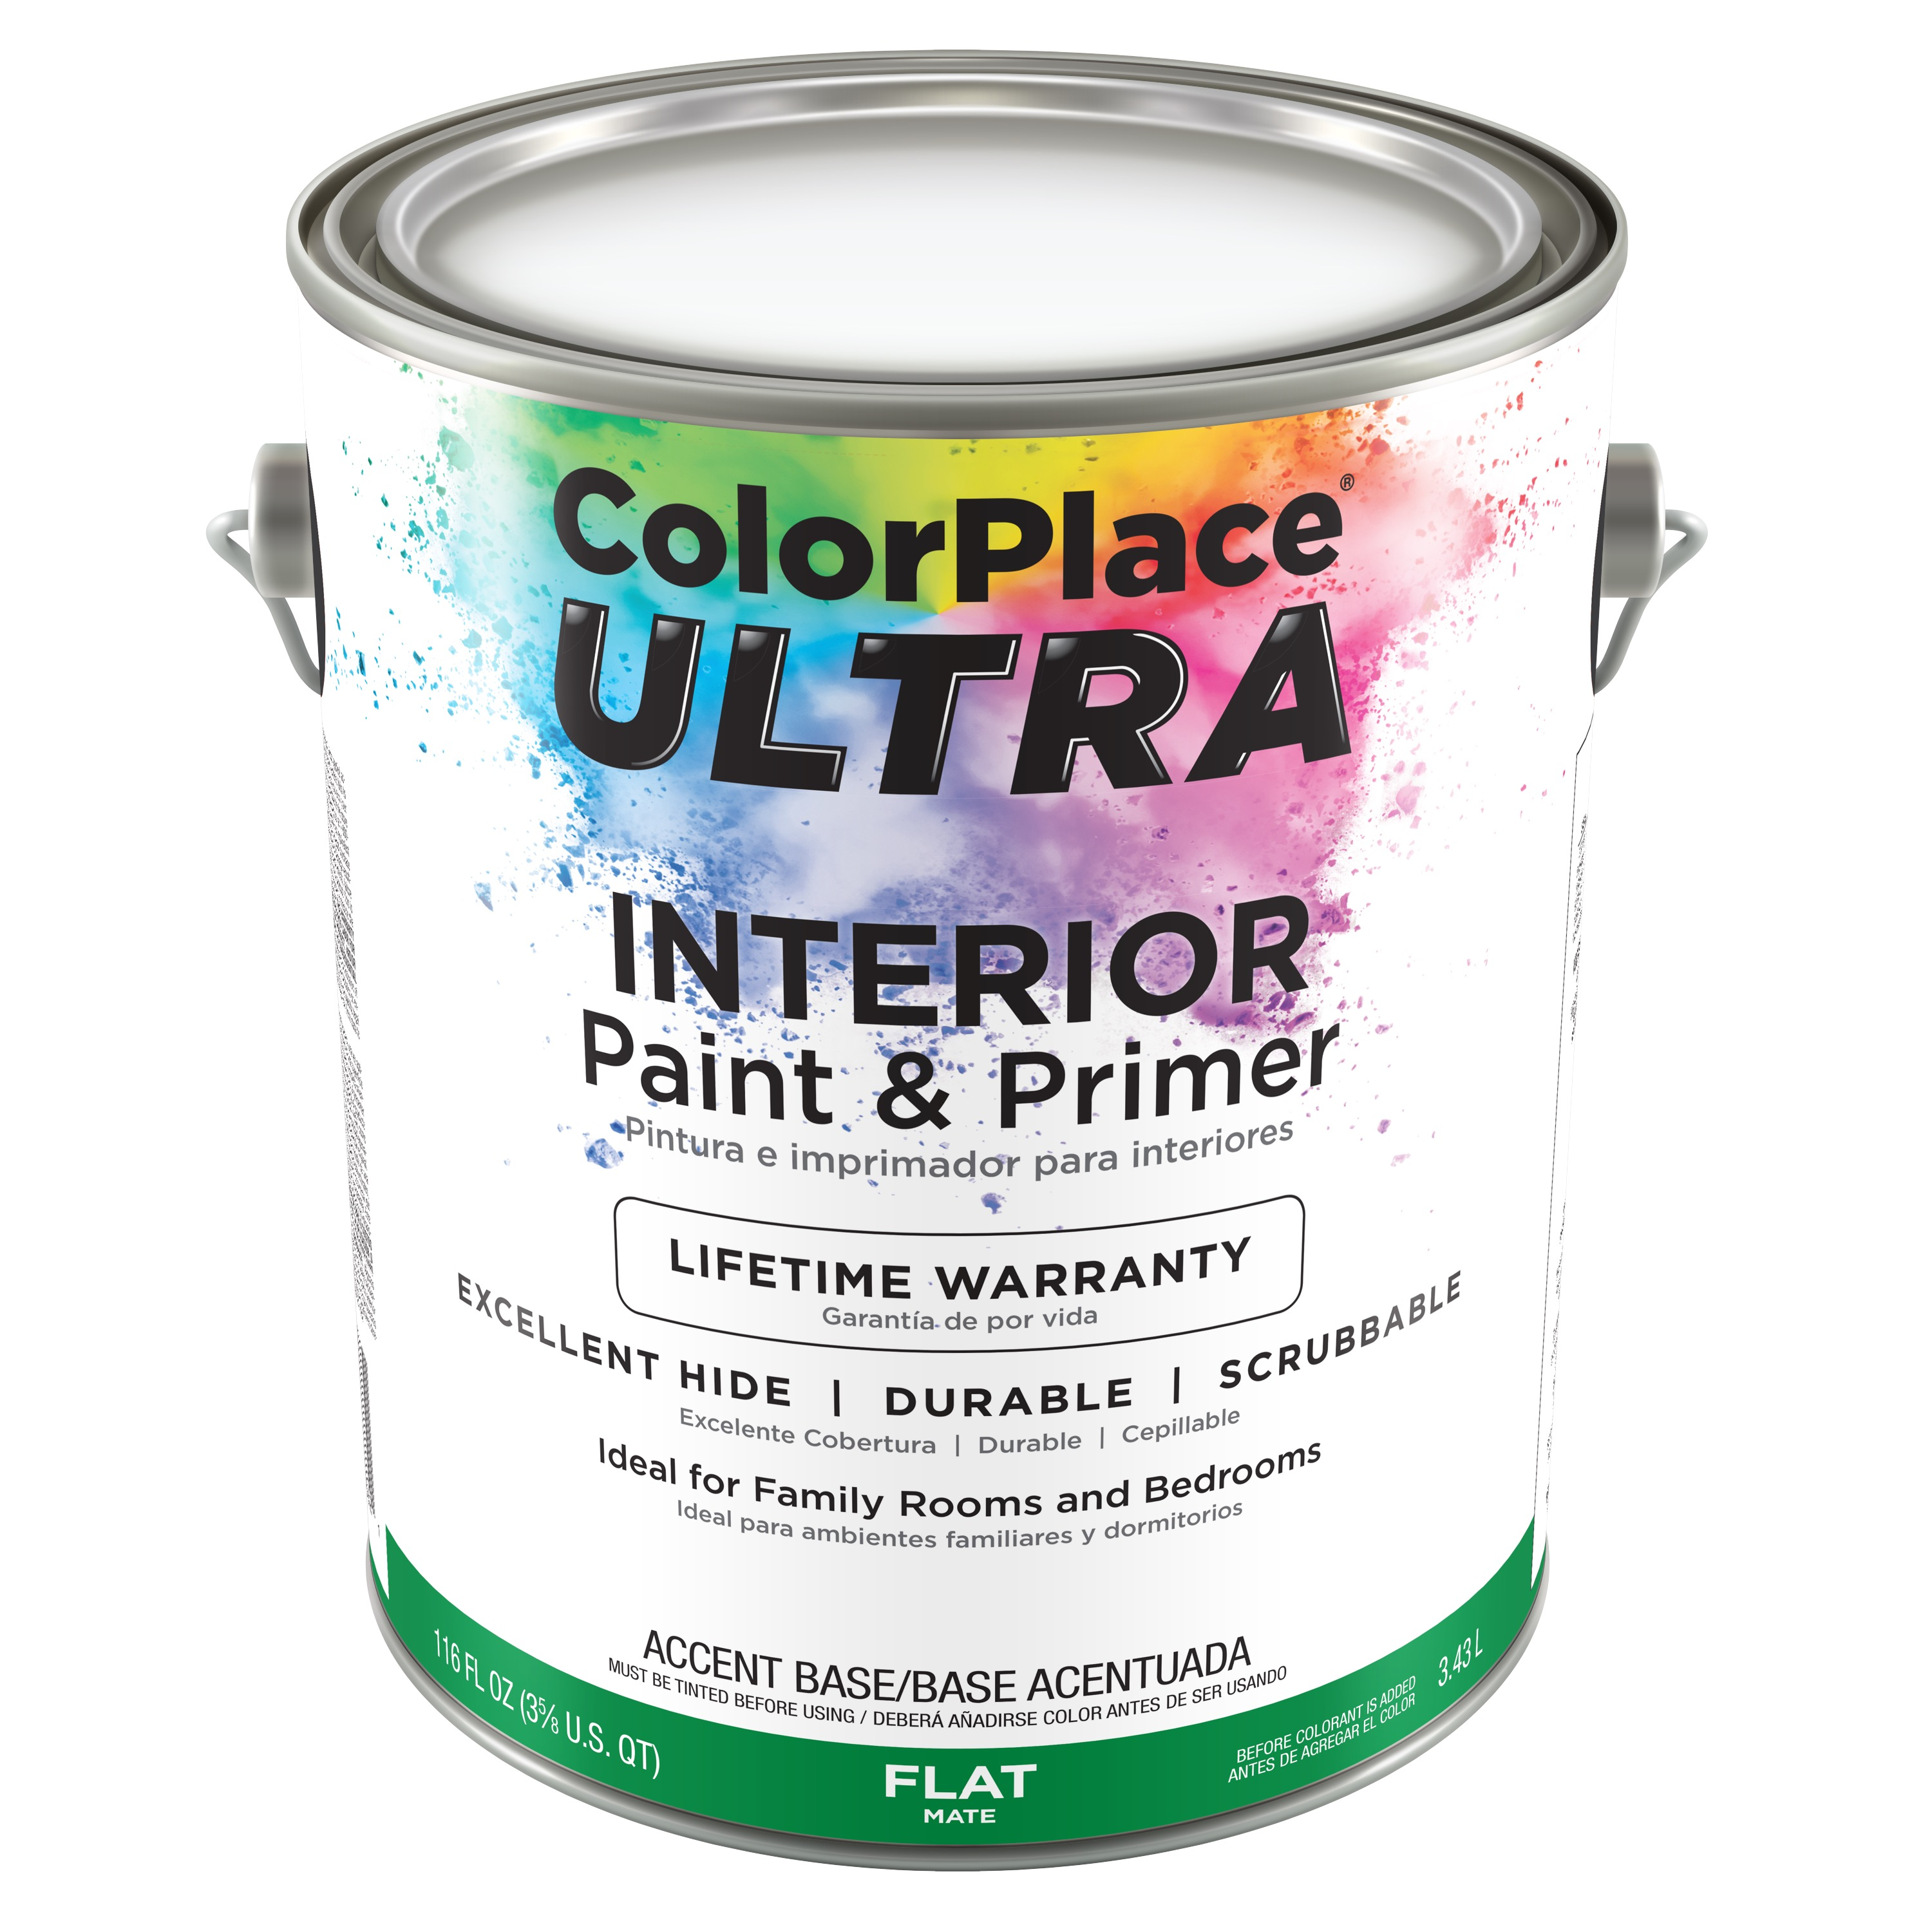 Color Place Ultra Flat Interior Paint & Primer Accent Base